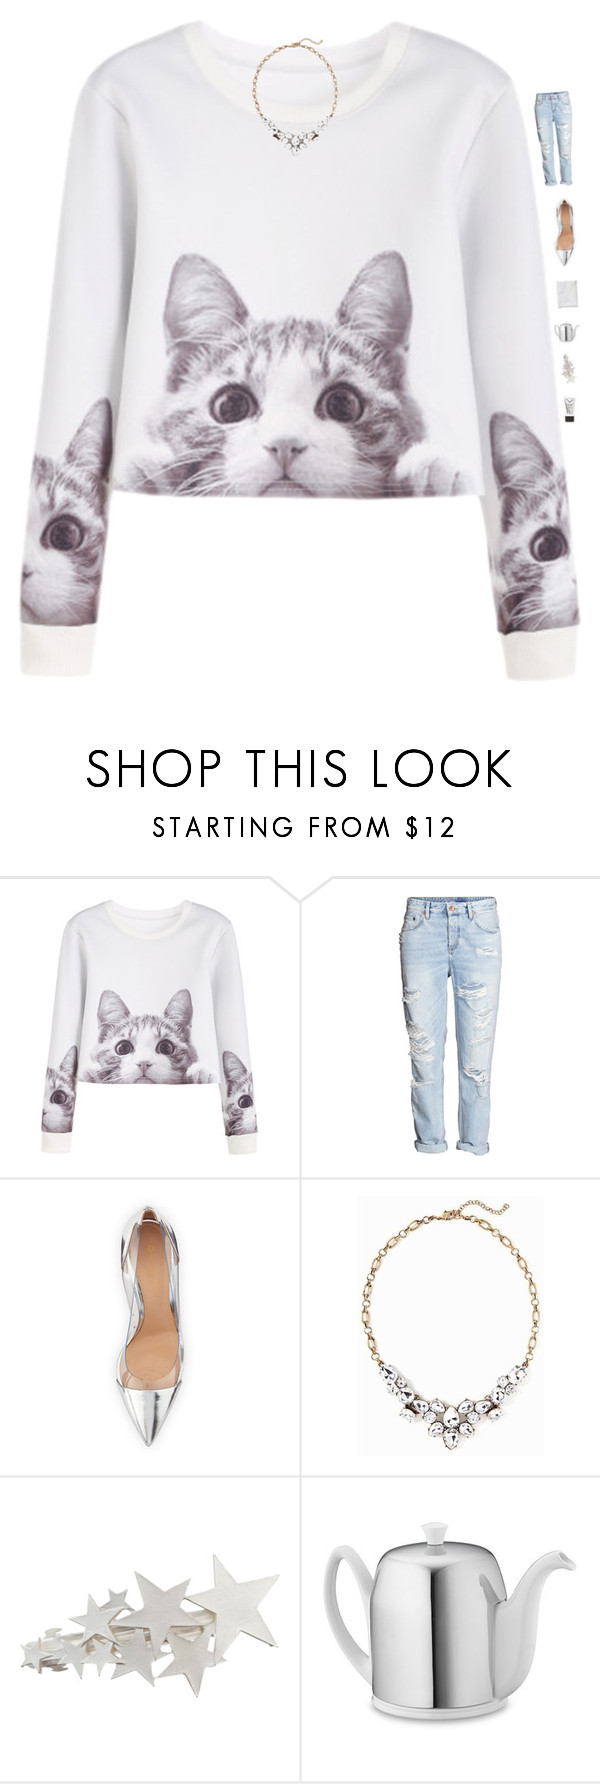 """""""Meow"""" by genesis129 ❤ liked on Polyvore featuring Gianvito Rossi, Old Navy, Williams-Sonoma, Stila and vintage"""